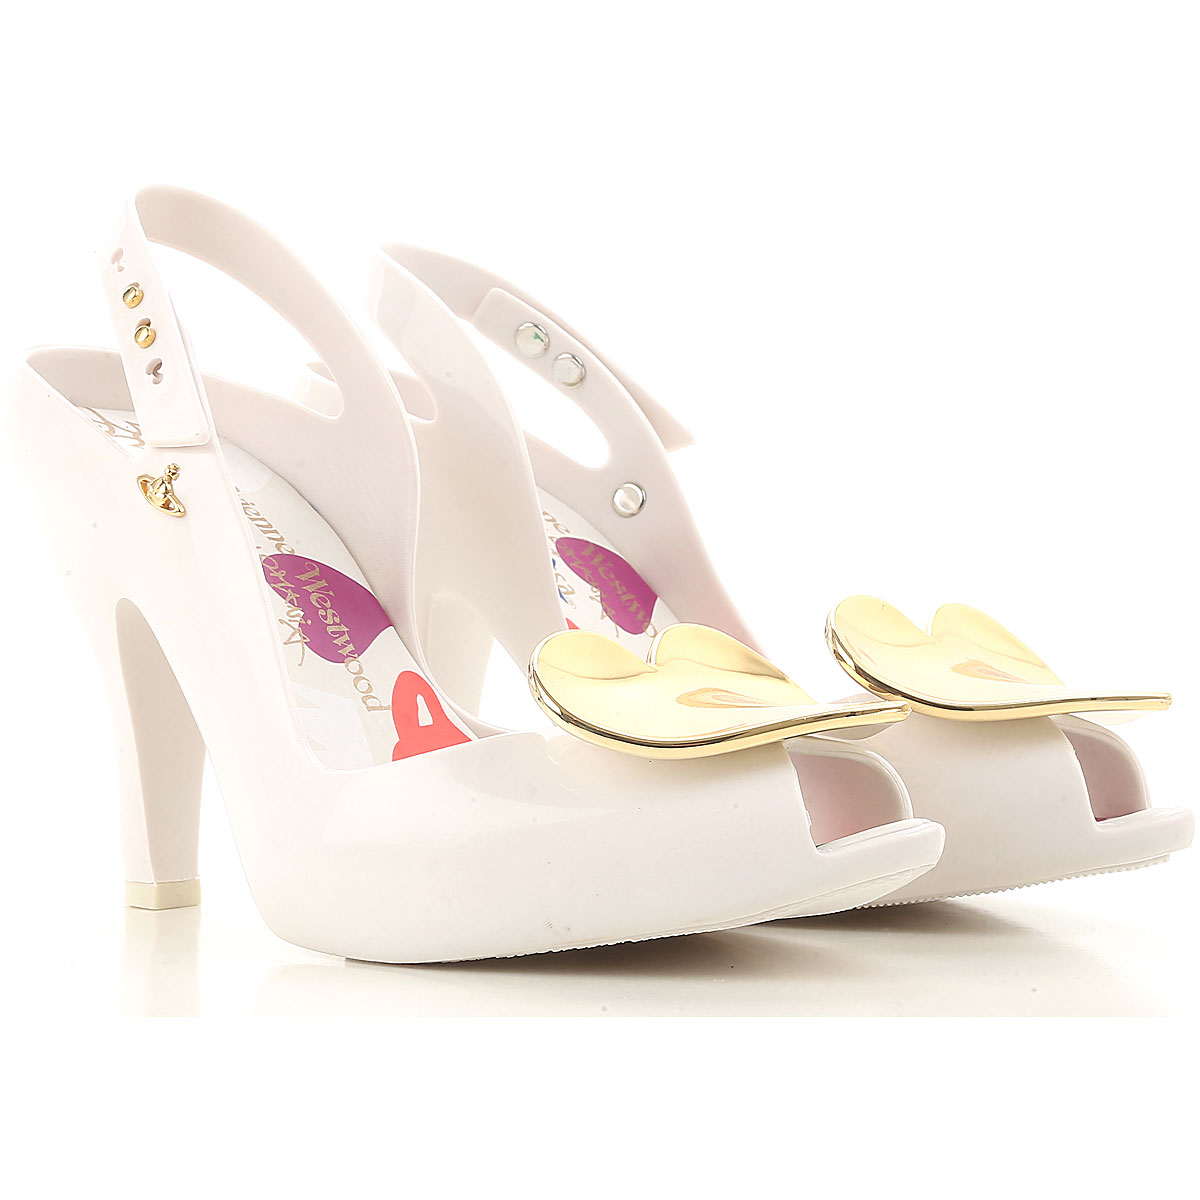 Image of Vivienne Westwood Peep Toe Open Shoes & Heels, Anglomania + Melissa, White, PVC, 2017, USA 6 - EUR 37 USA 9 - EUR 40